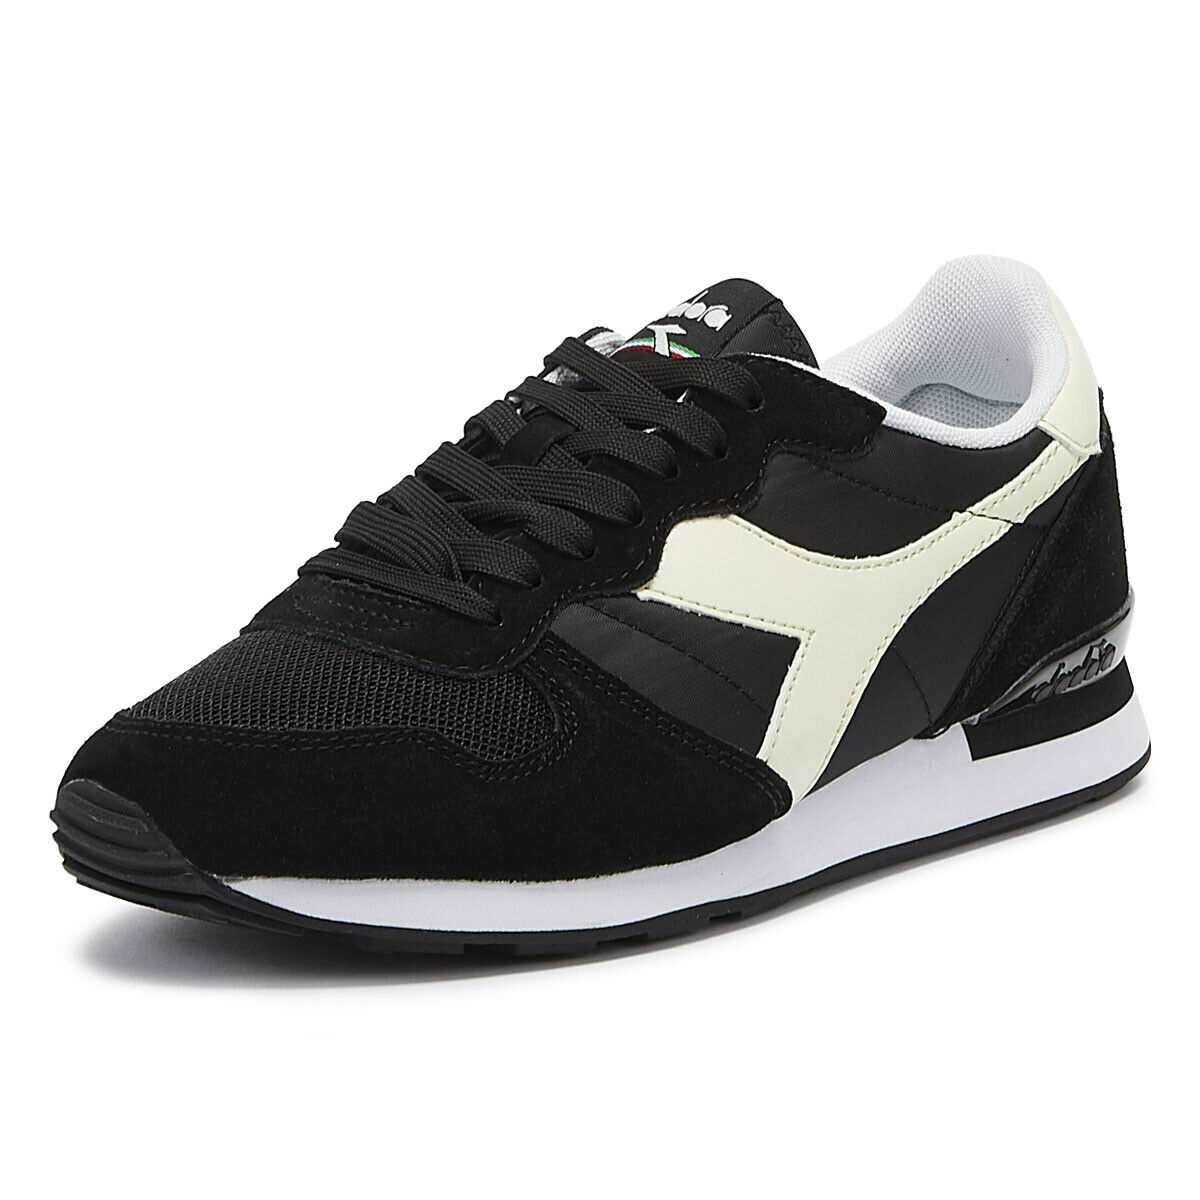 Diadora Camaro Mens Black   White Trainers Lace Up Sport Casual shoes